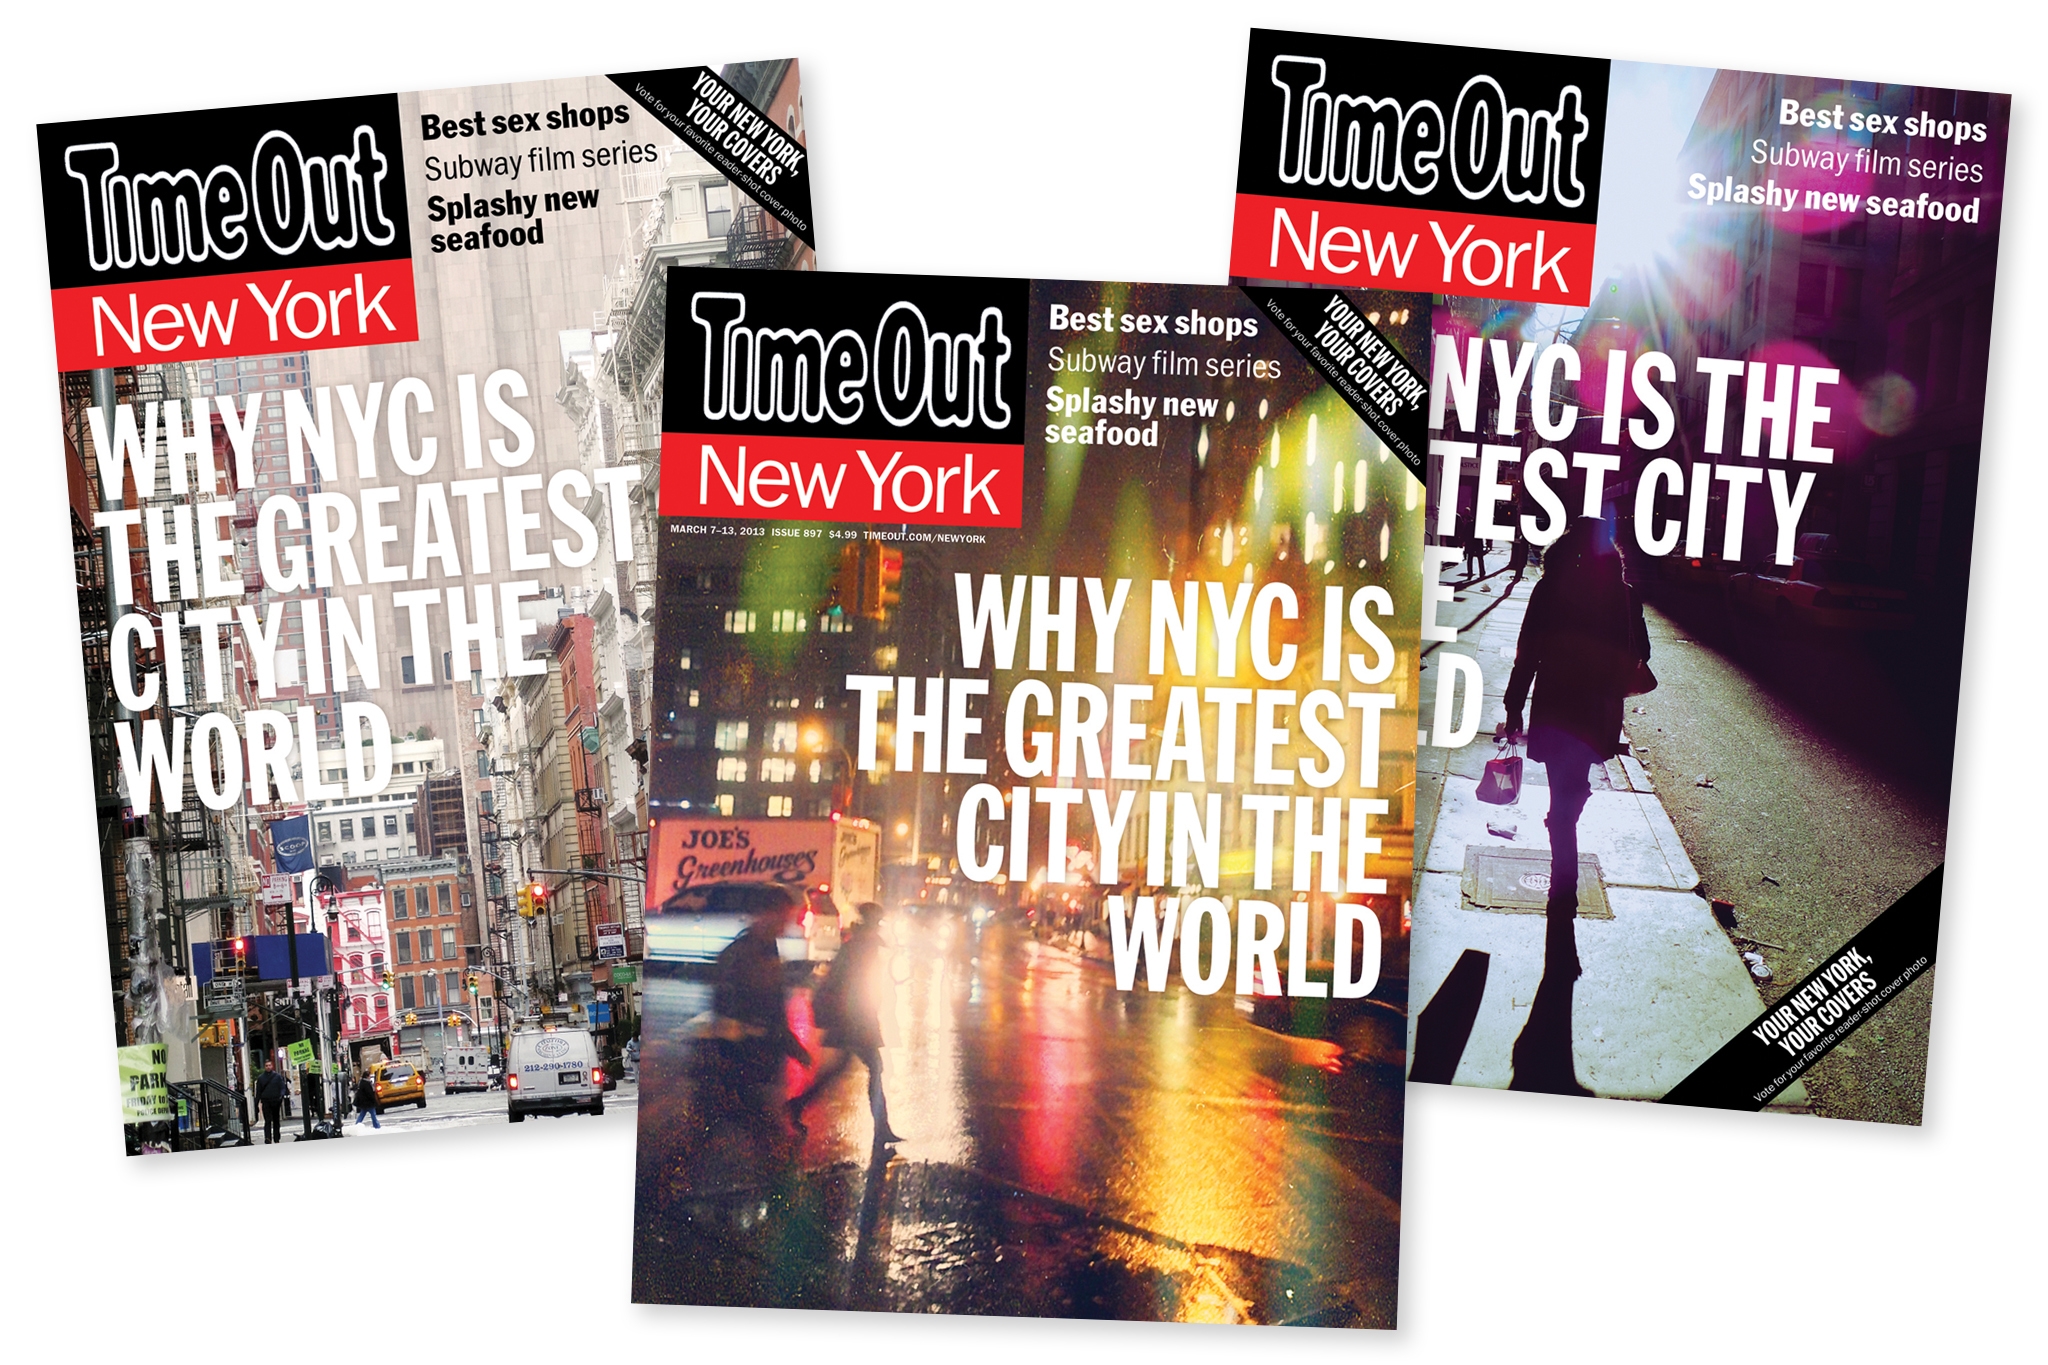 Editor's letter: Why NYC is the greatest city in the world